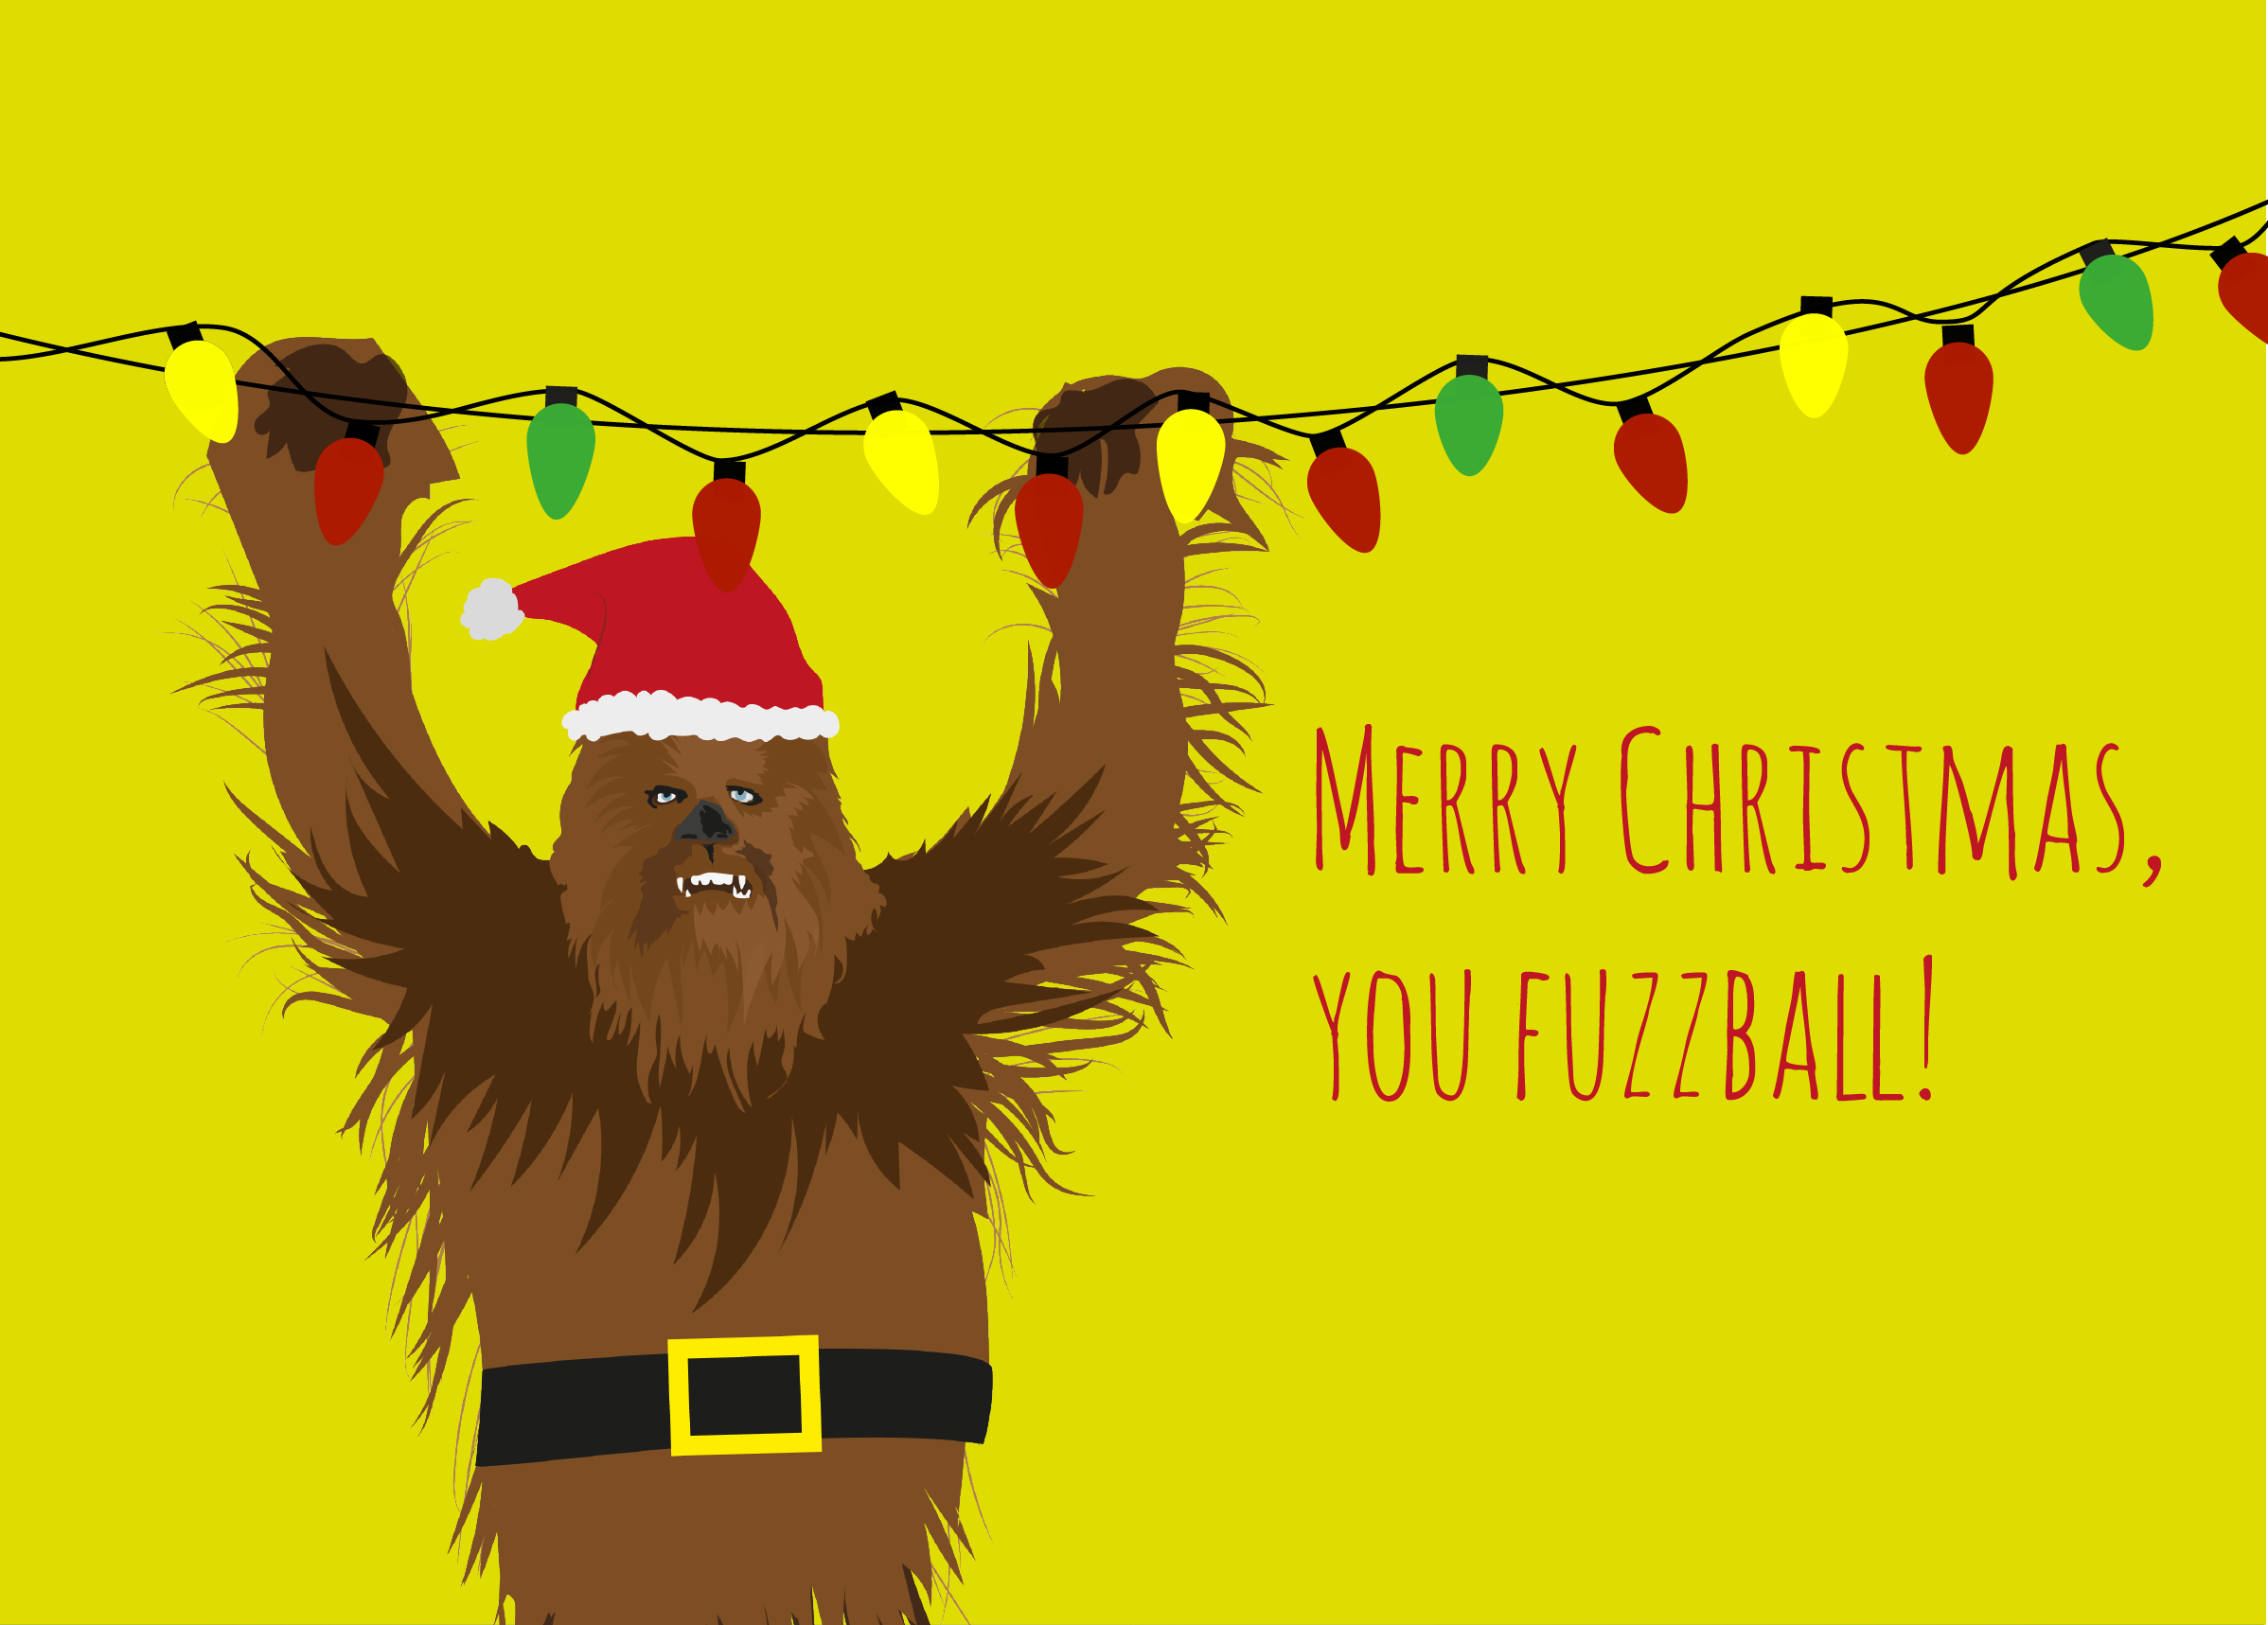 Chewbacca Christmas Card- Star Wars Infographic Ecard | Visual.ly